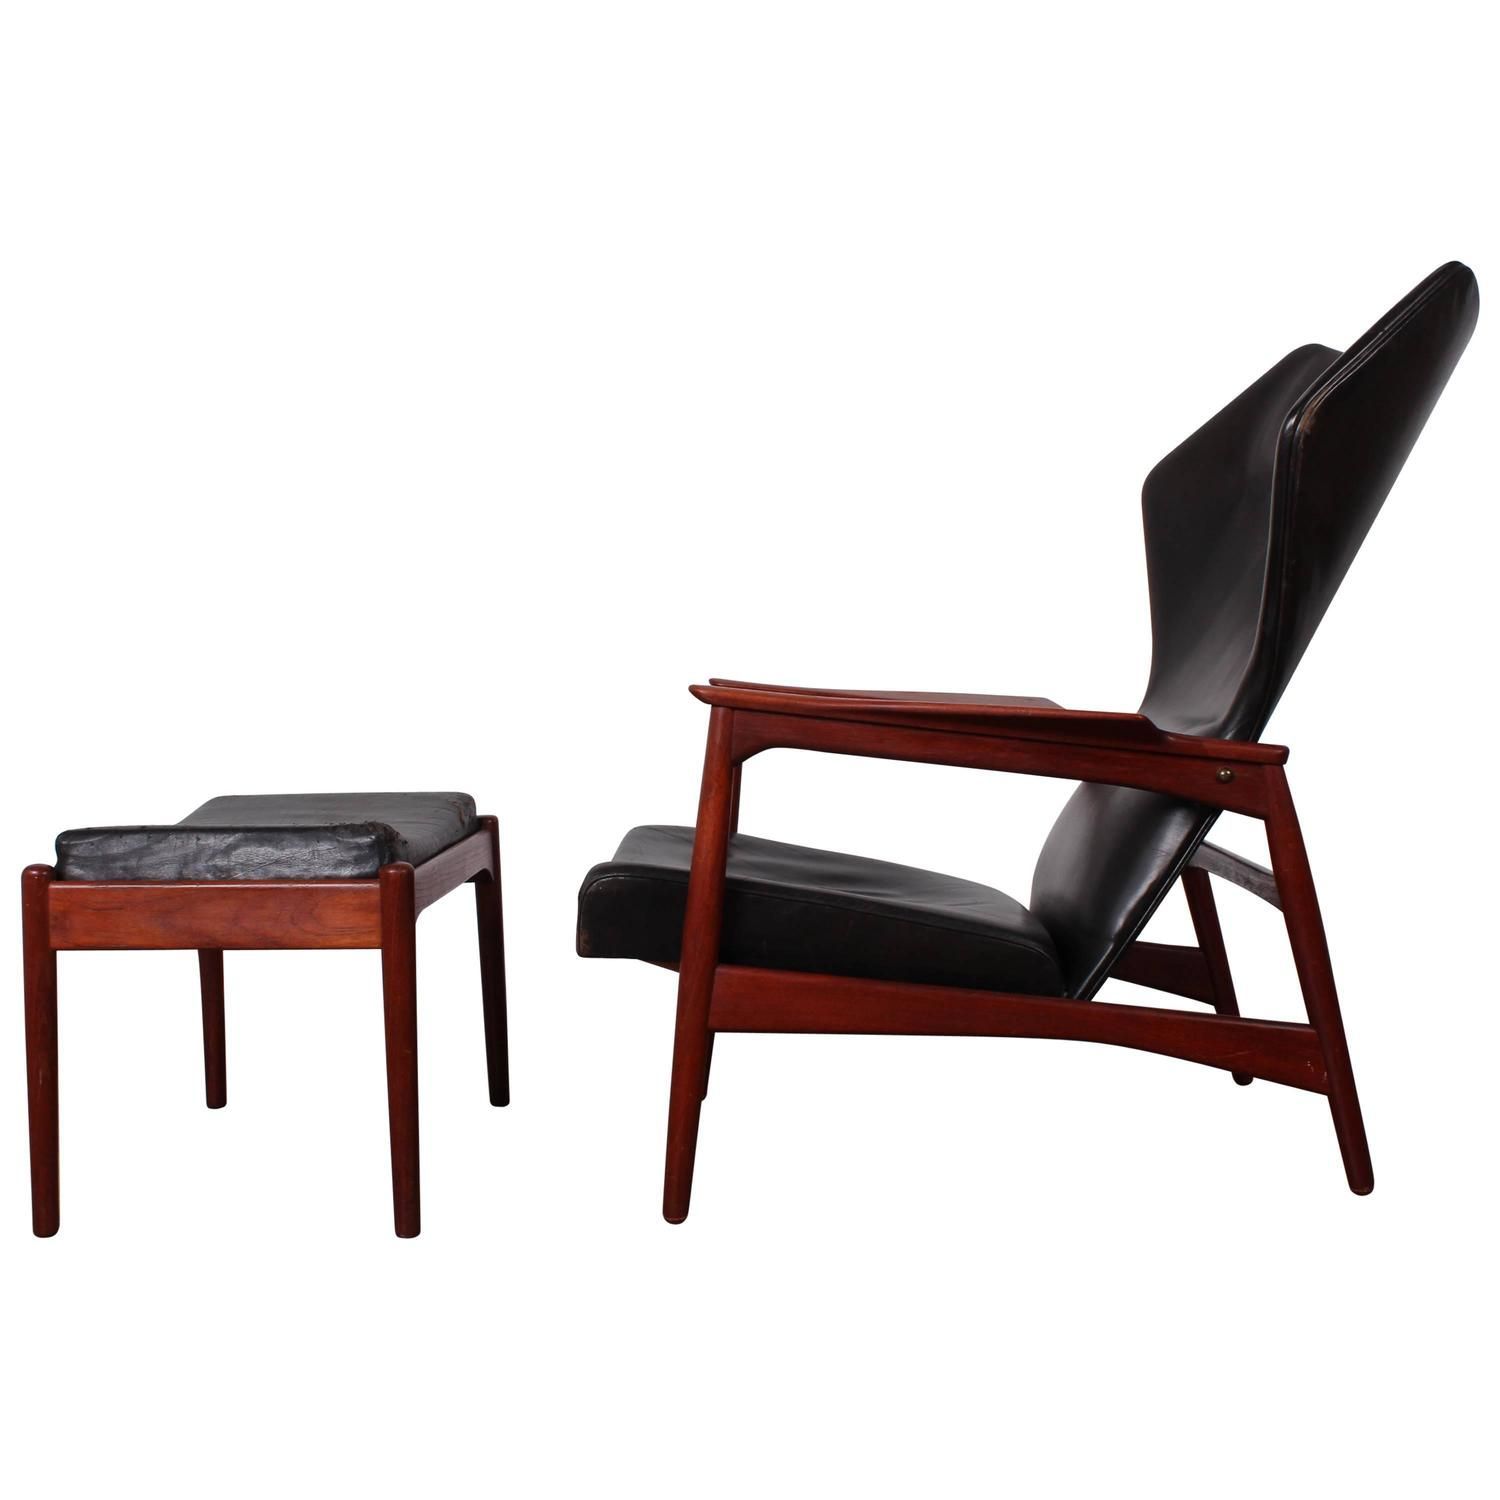 Adjustable Leather Lounge Chair And Ottoman By Ib Kofod Larsen